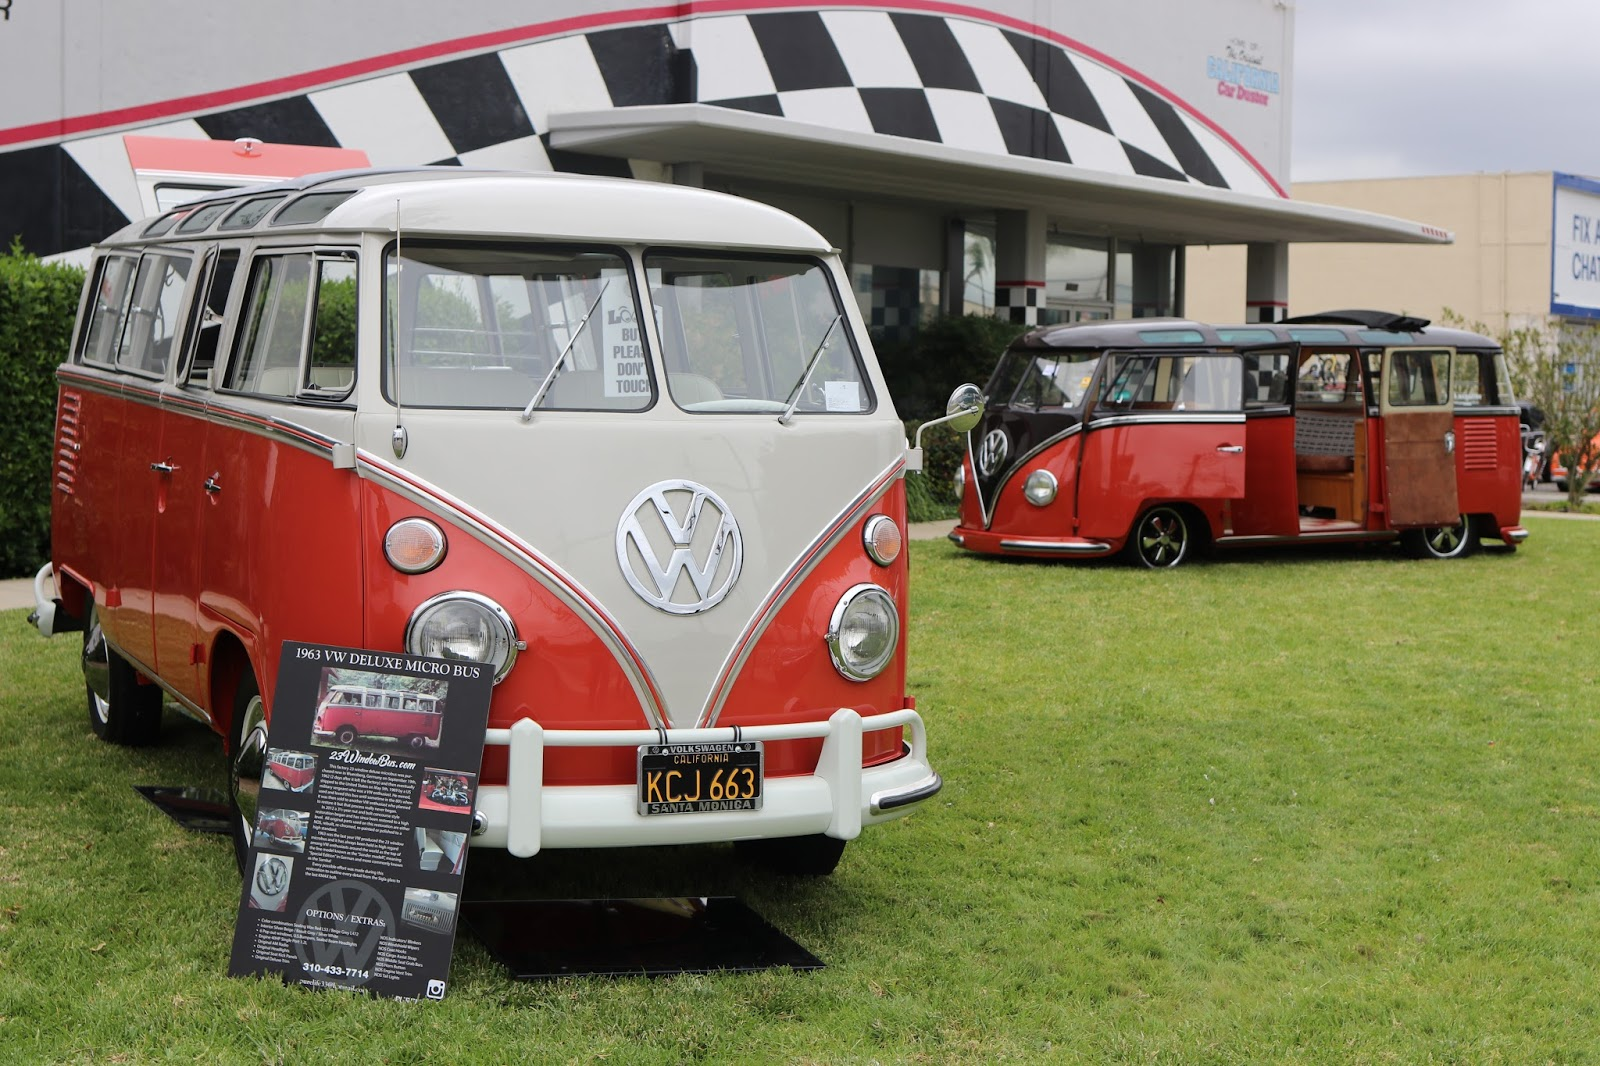 Covering Classic Cars : LA Air Cooled Volkswagen Club Show and ...